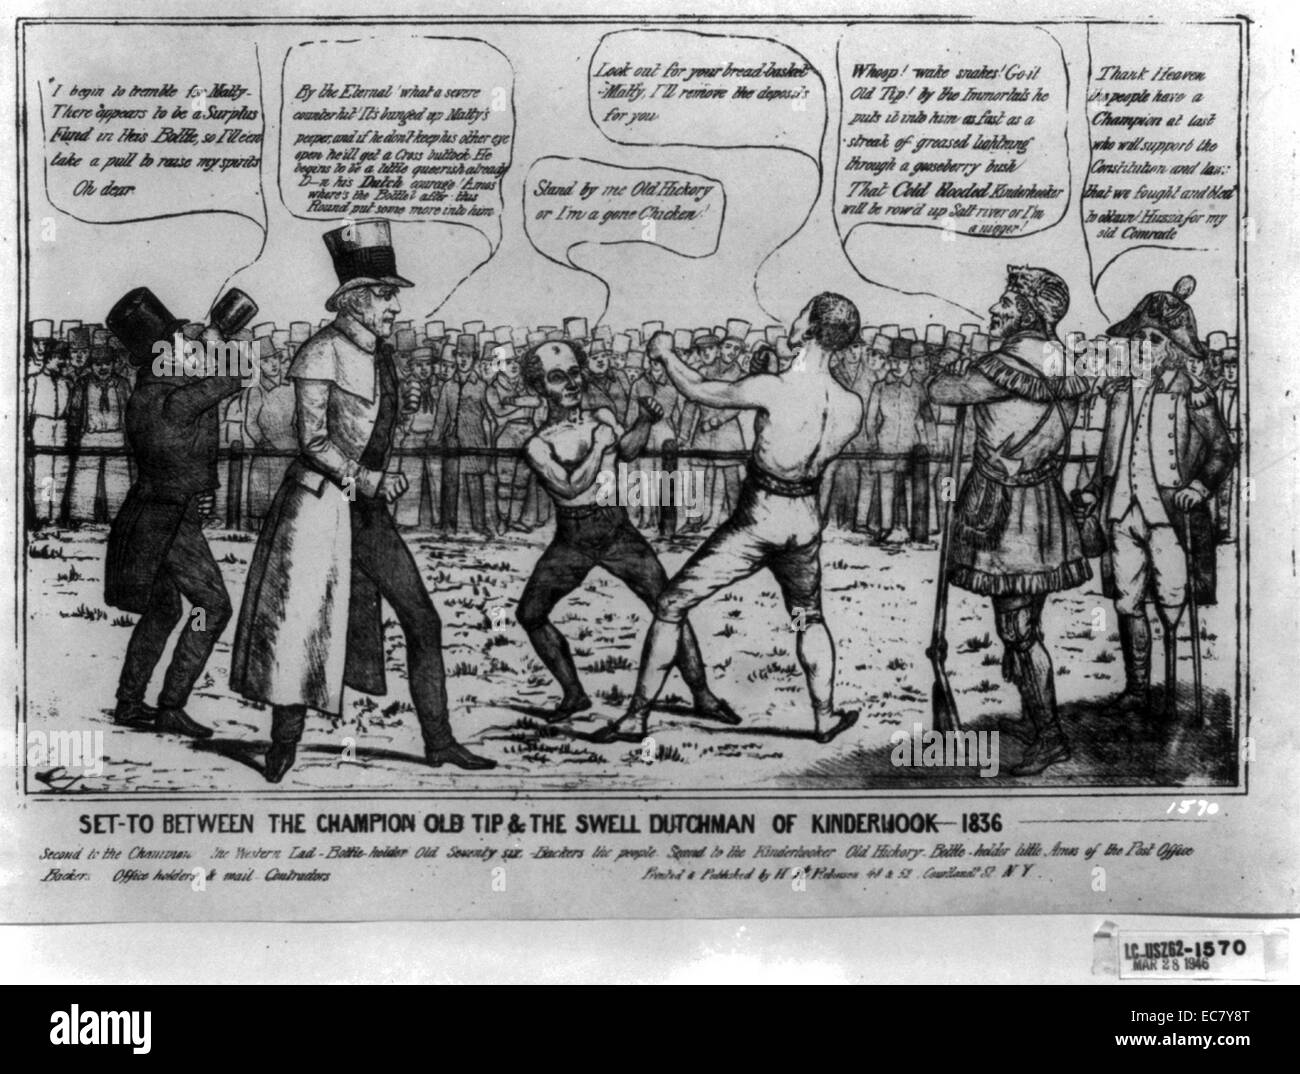 Satire on the 1836 presidential campaign - Stock Image